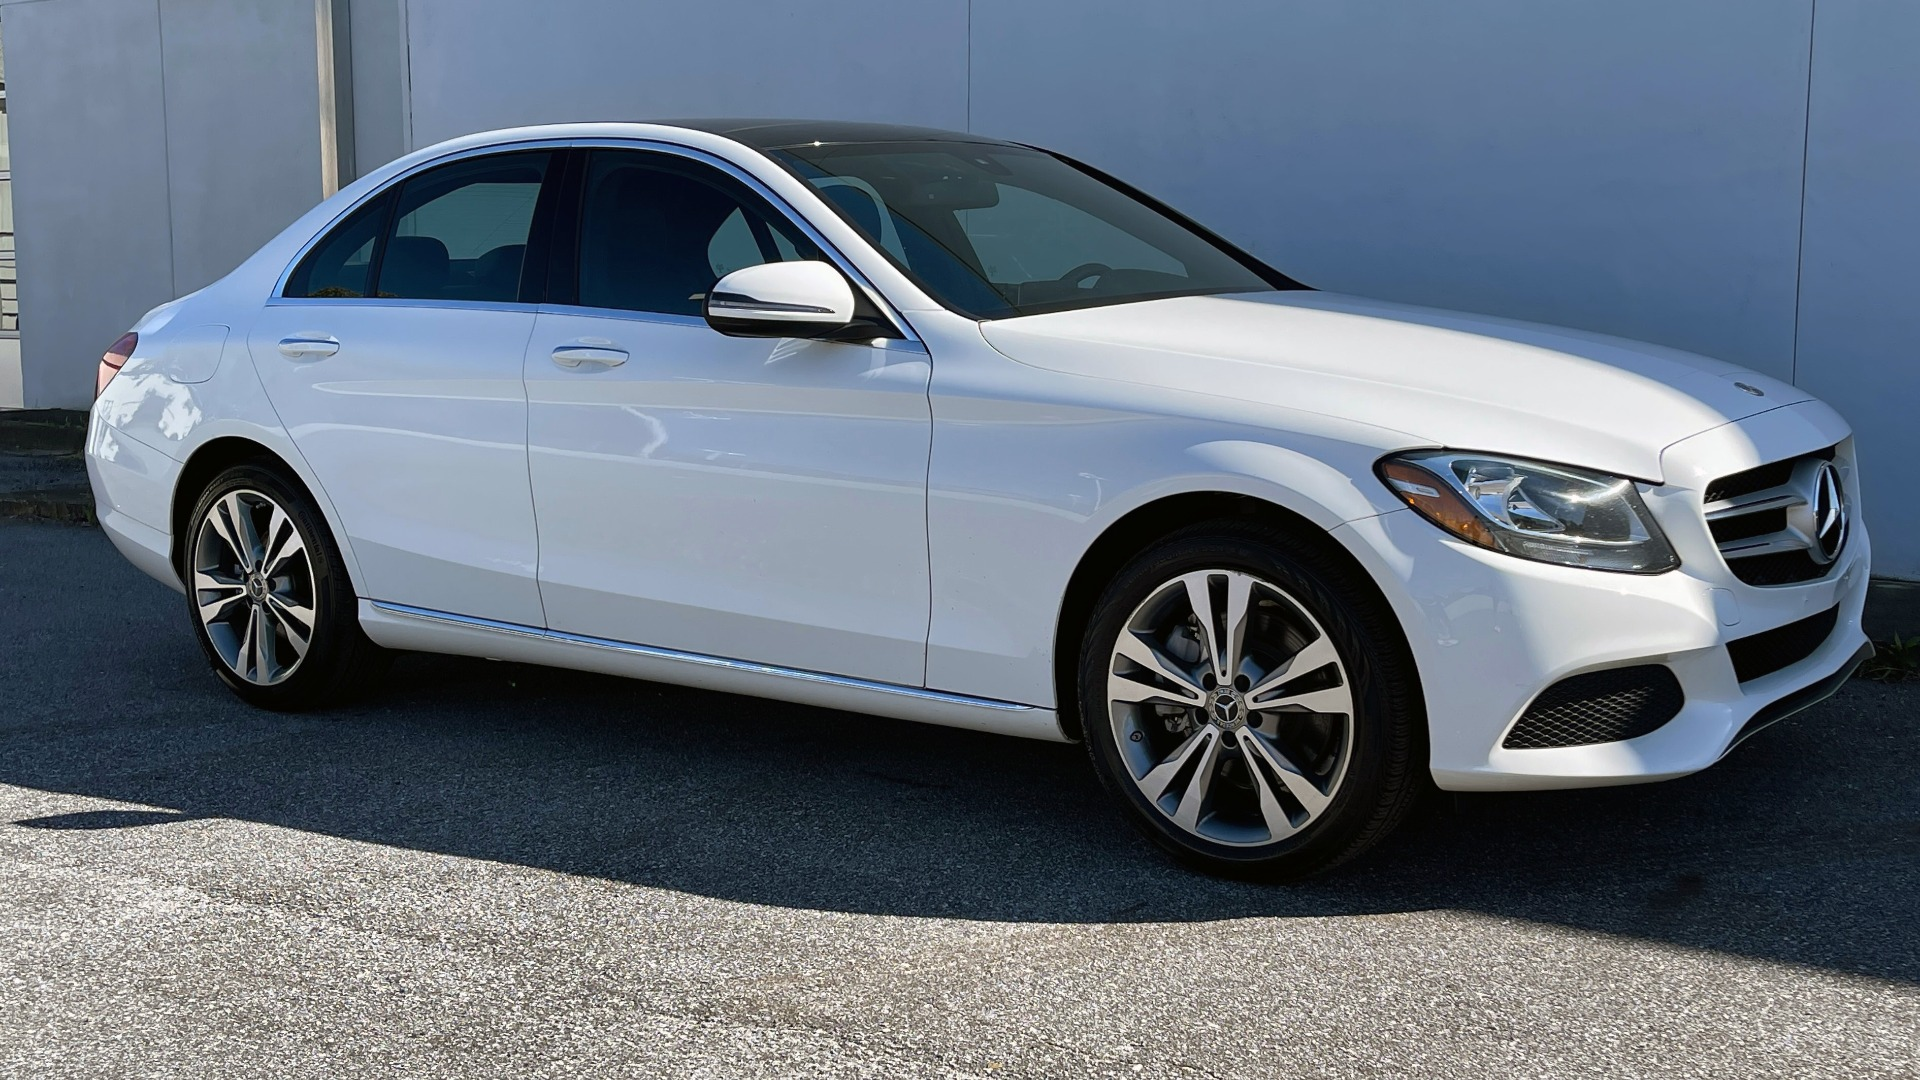 Used 2018 Mercedes-Benz C-CLASS C 300 4MATIC PREMIUM / SMARTPHONE INTEG / PANO-ROOF / REARVIEW for sale $30,995 at Formula Imports in Charlotte NC 28227 7